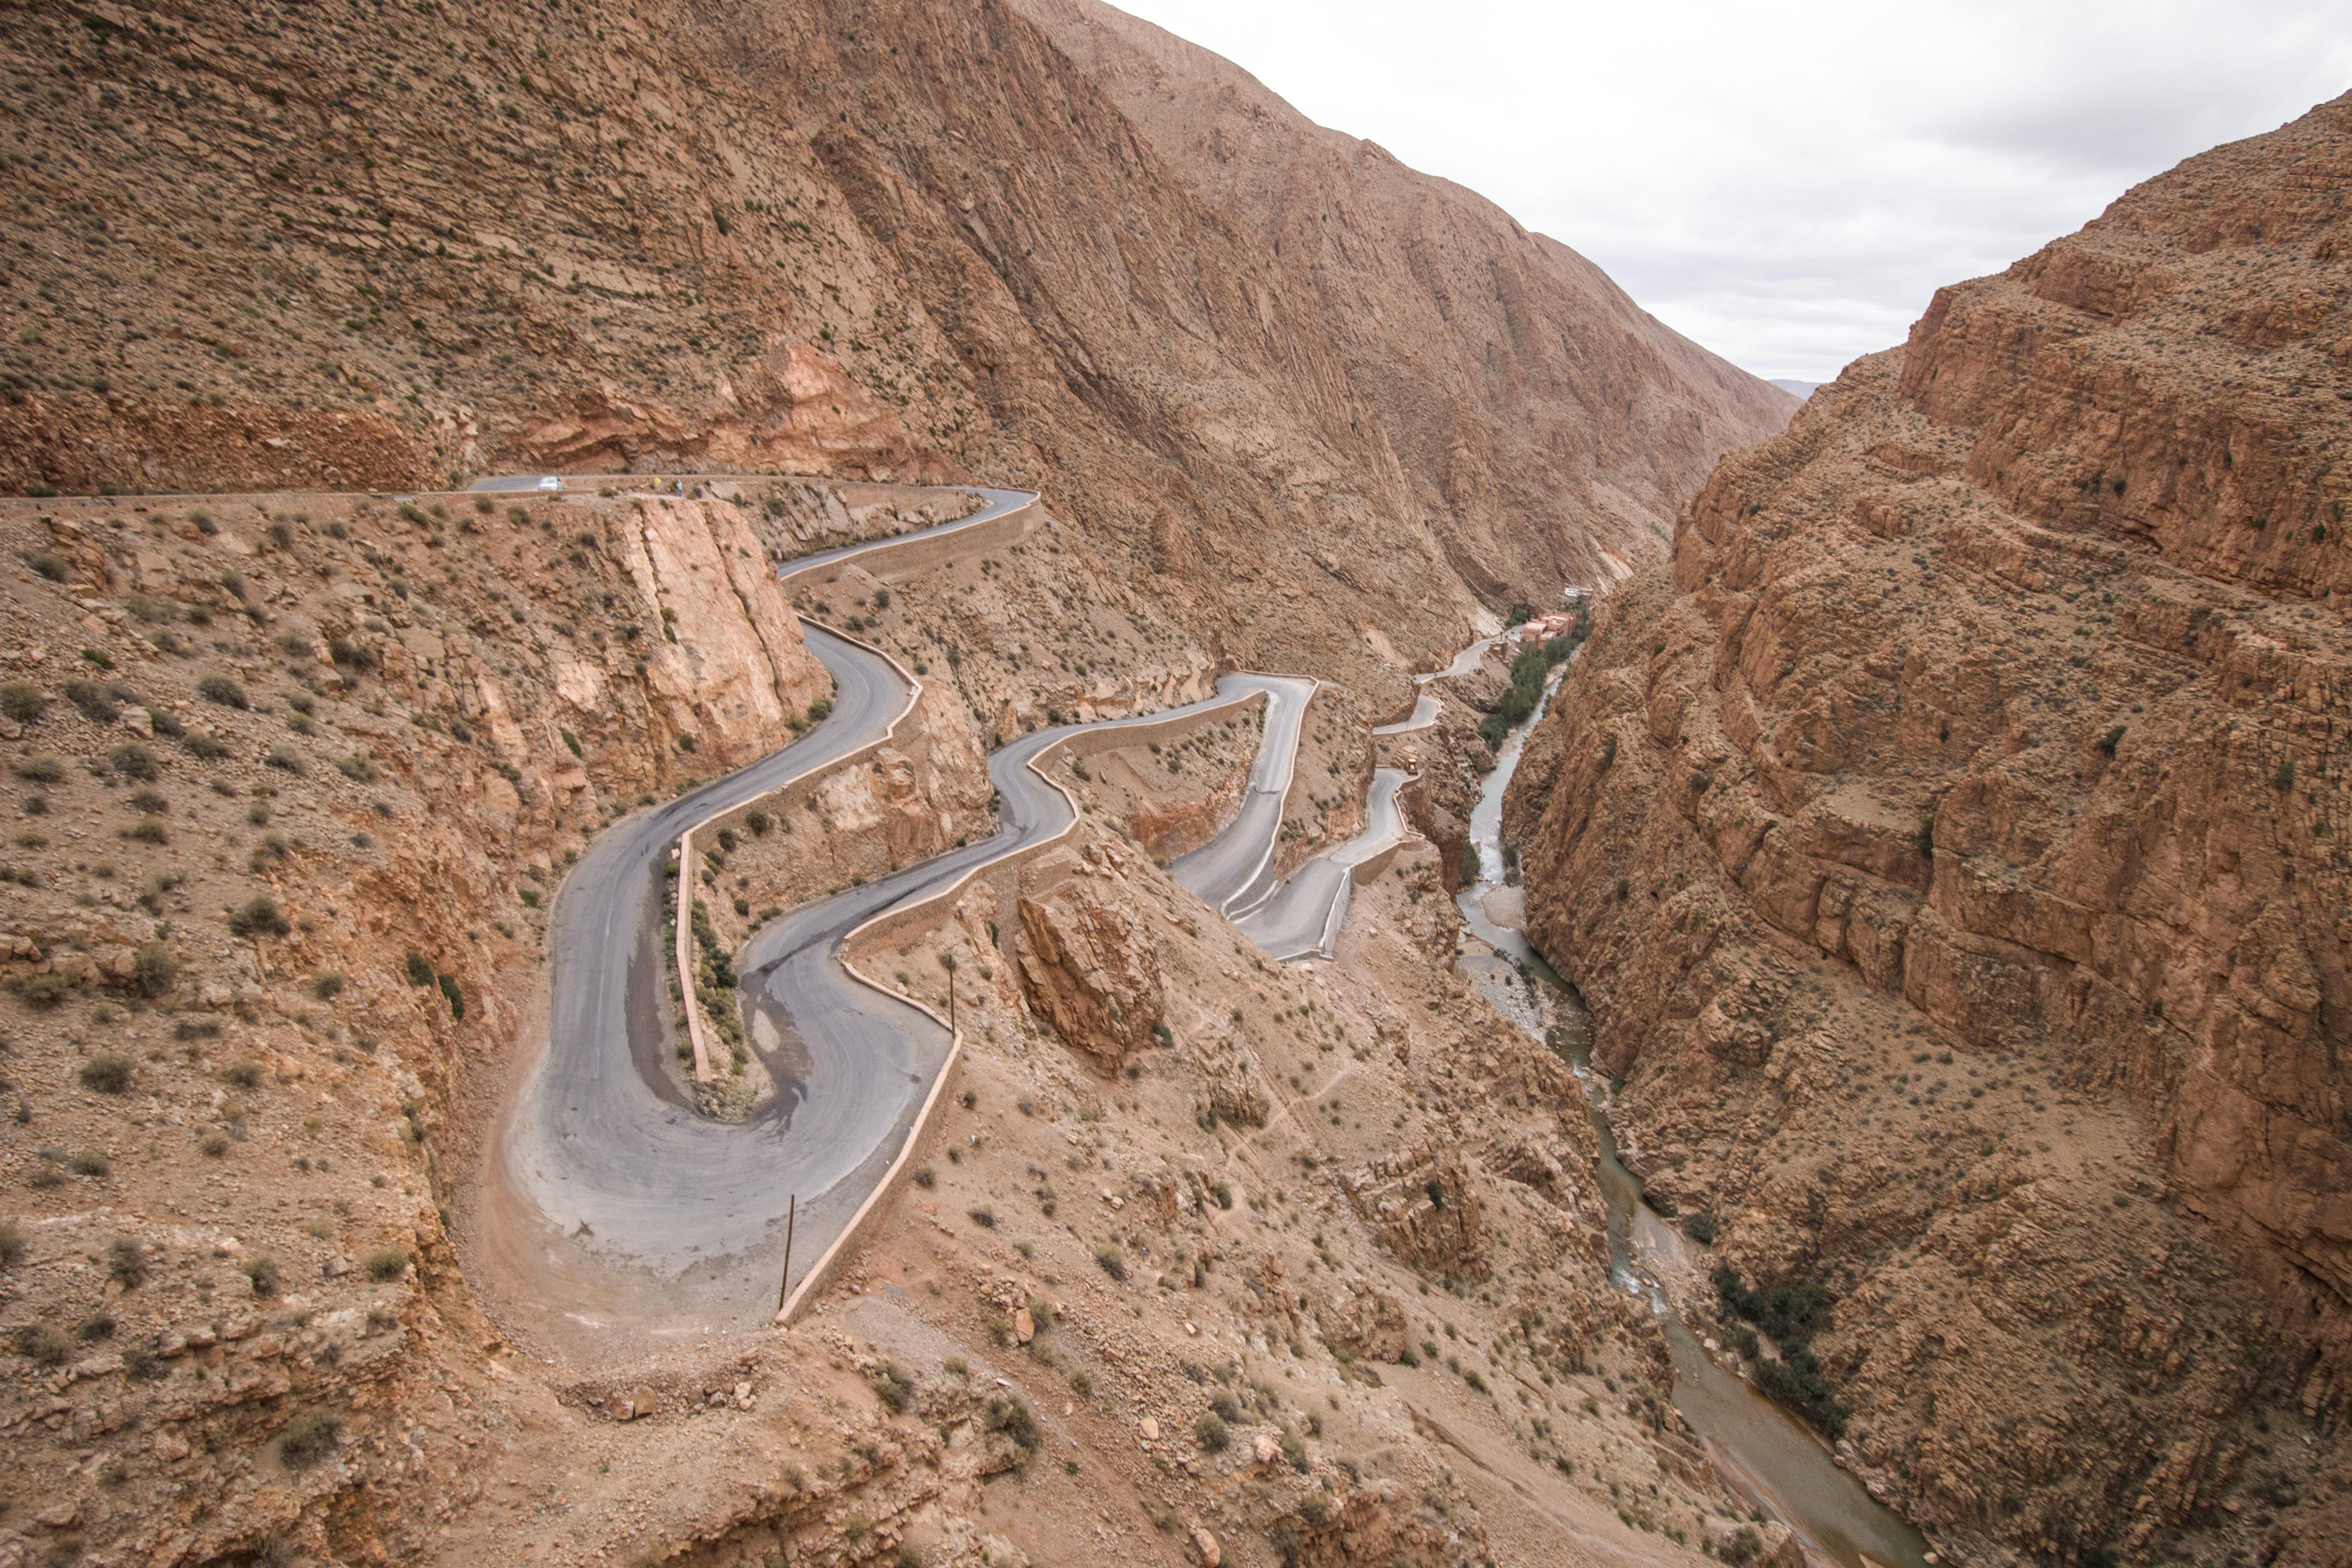 A windy road up a desert mountain in Dades Valley